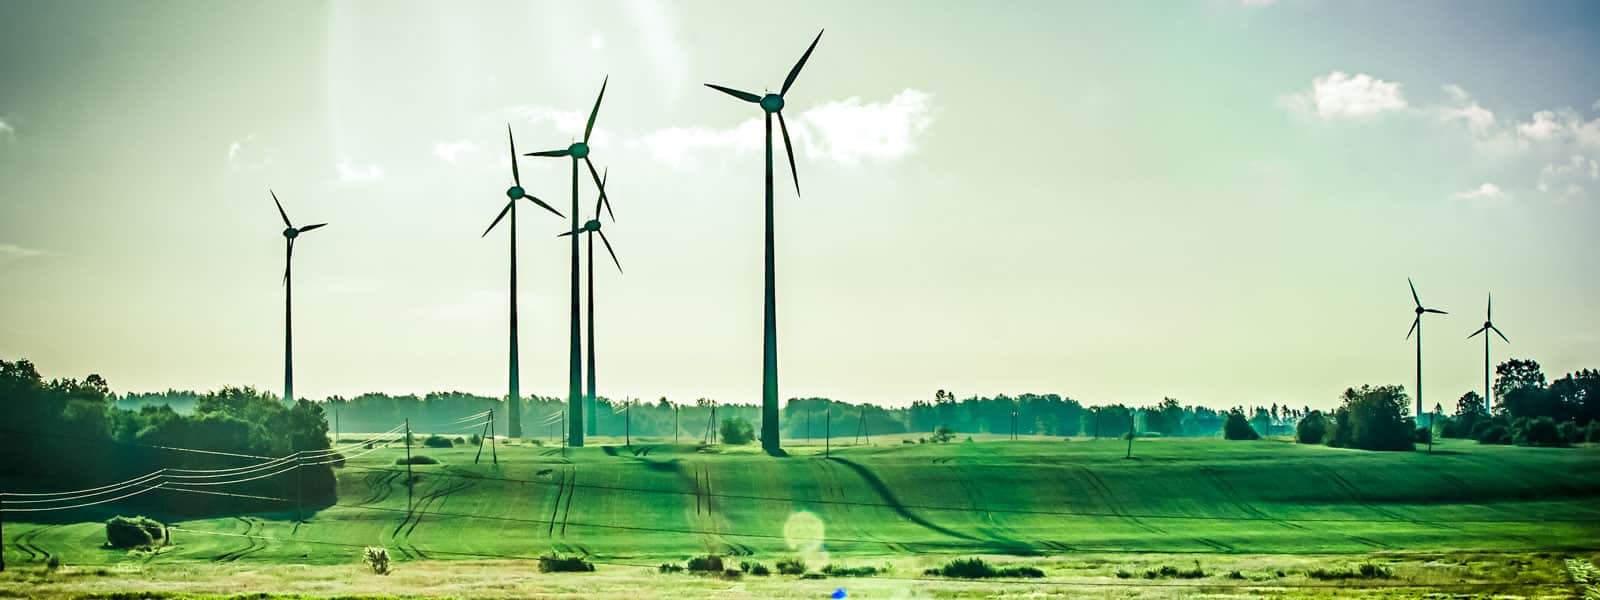 windmills standing in a green field